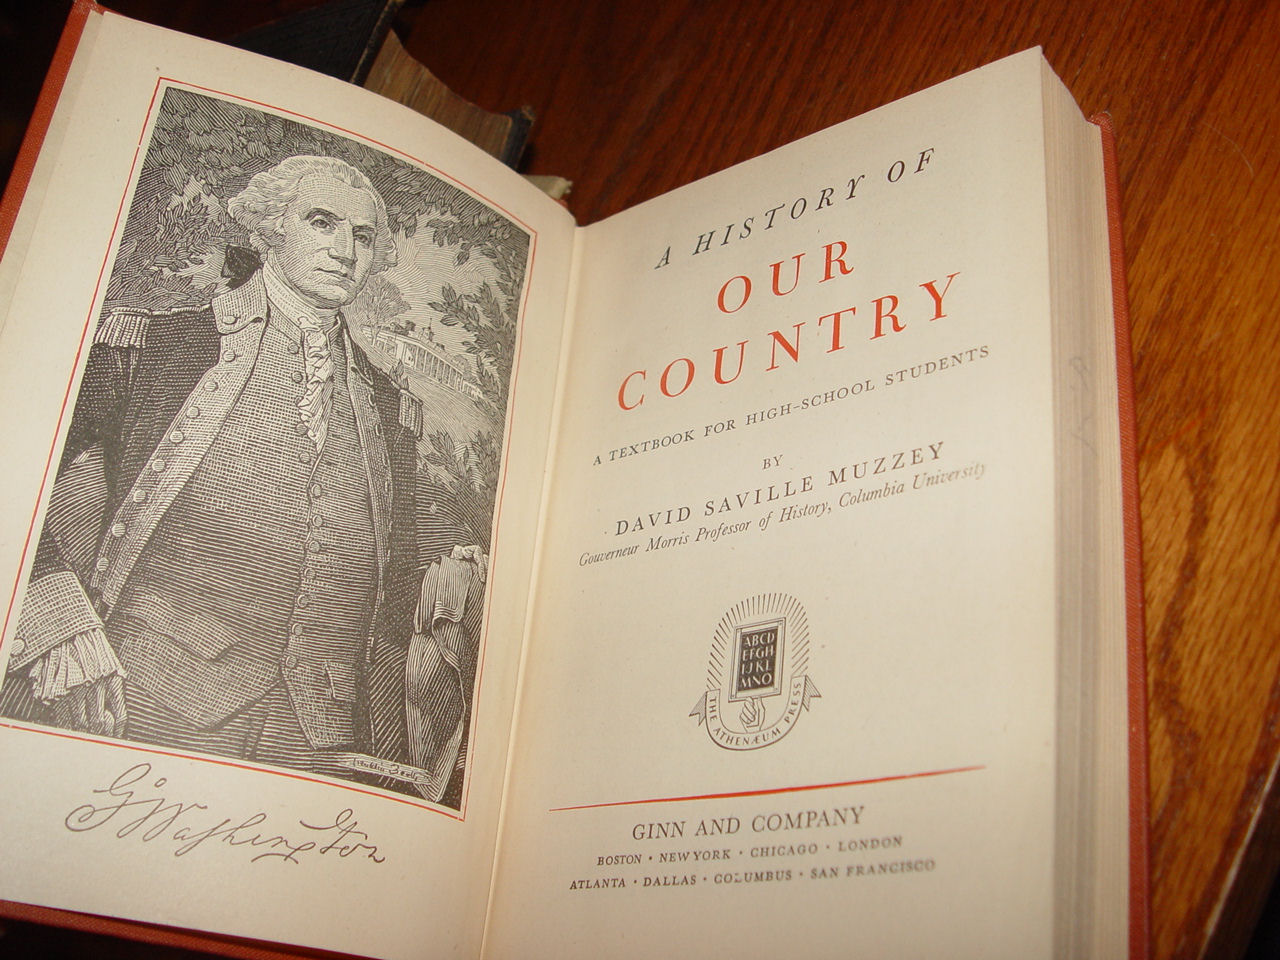 A History of Our                                         Country by David Saville Muzzey;                                         Ginn and Company, 1945